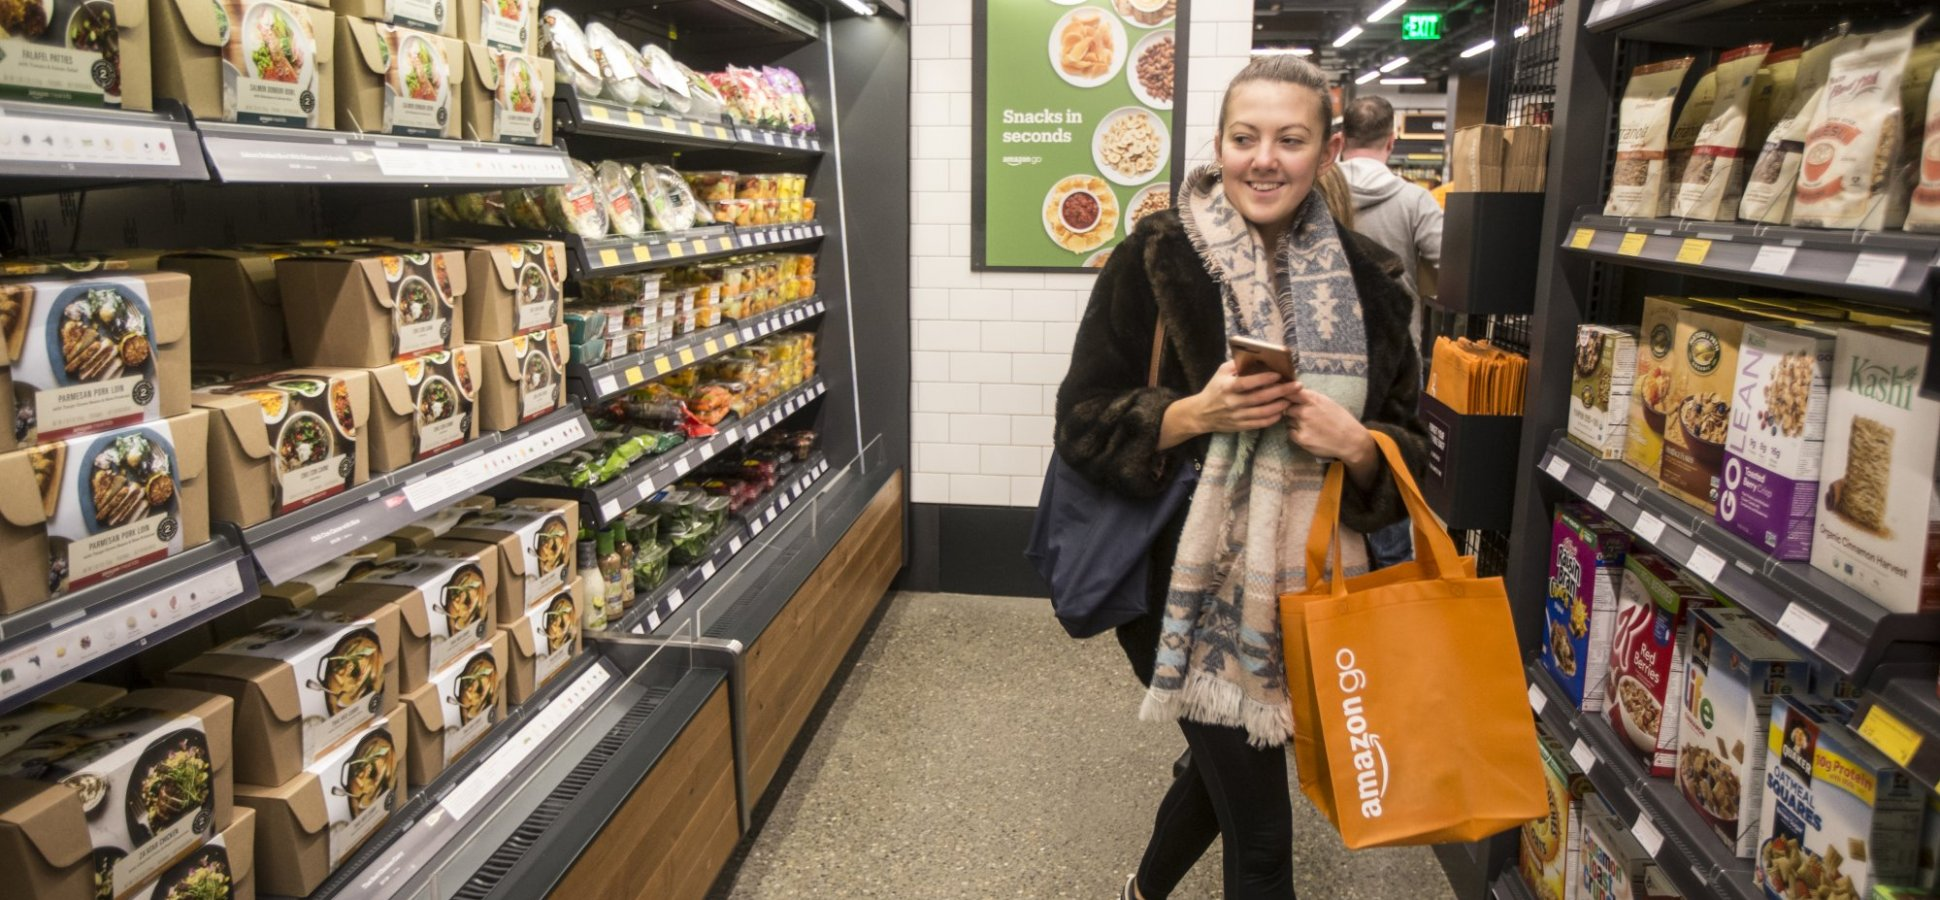 Why Scan-and-Go Technology Is Surging in More Grocery Stores